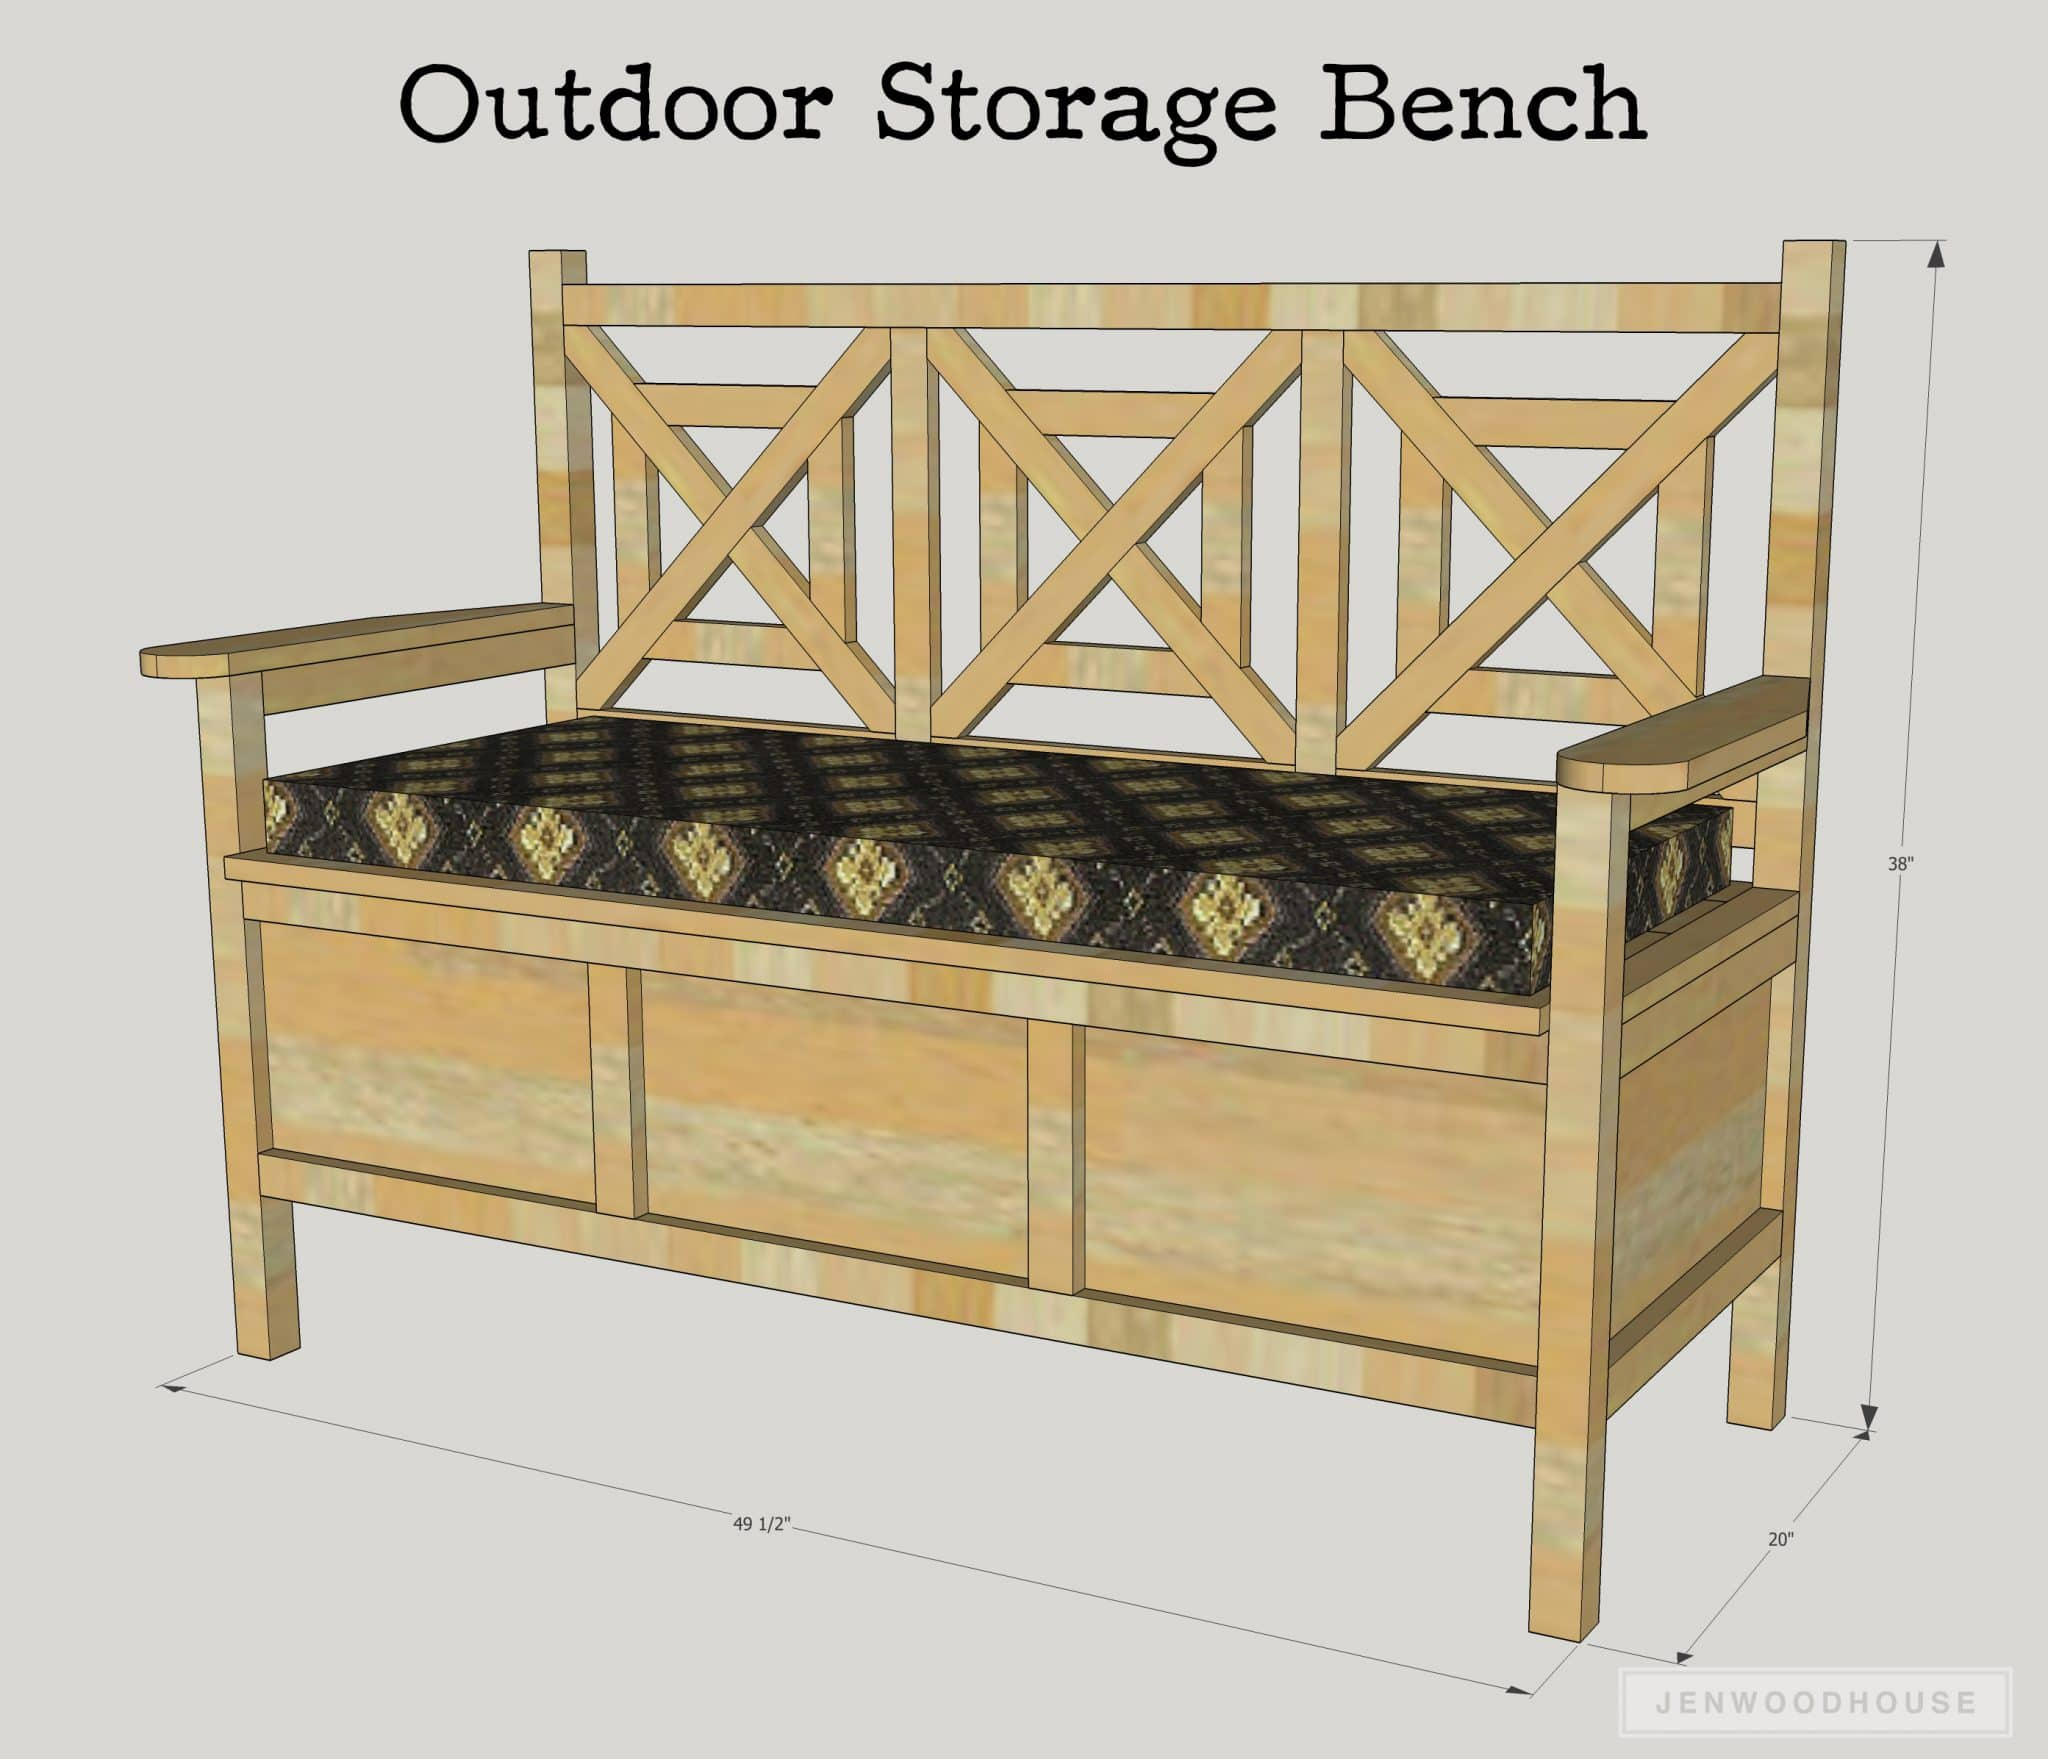 how to build a diy outdoor storage bench, Garten ideen